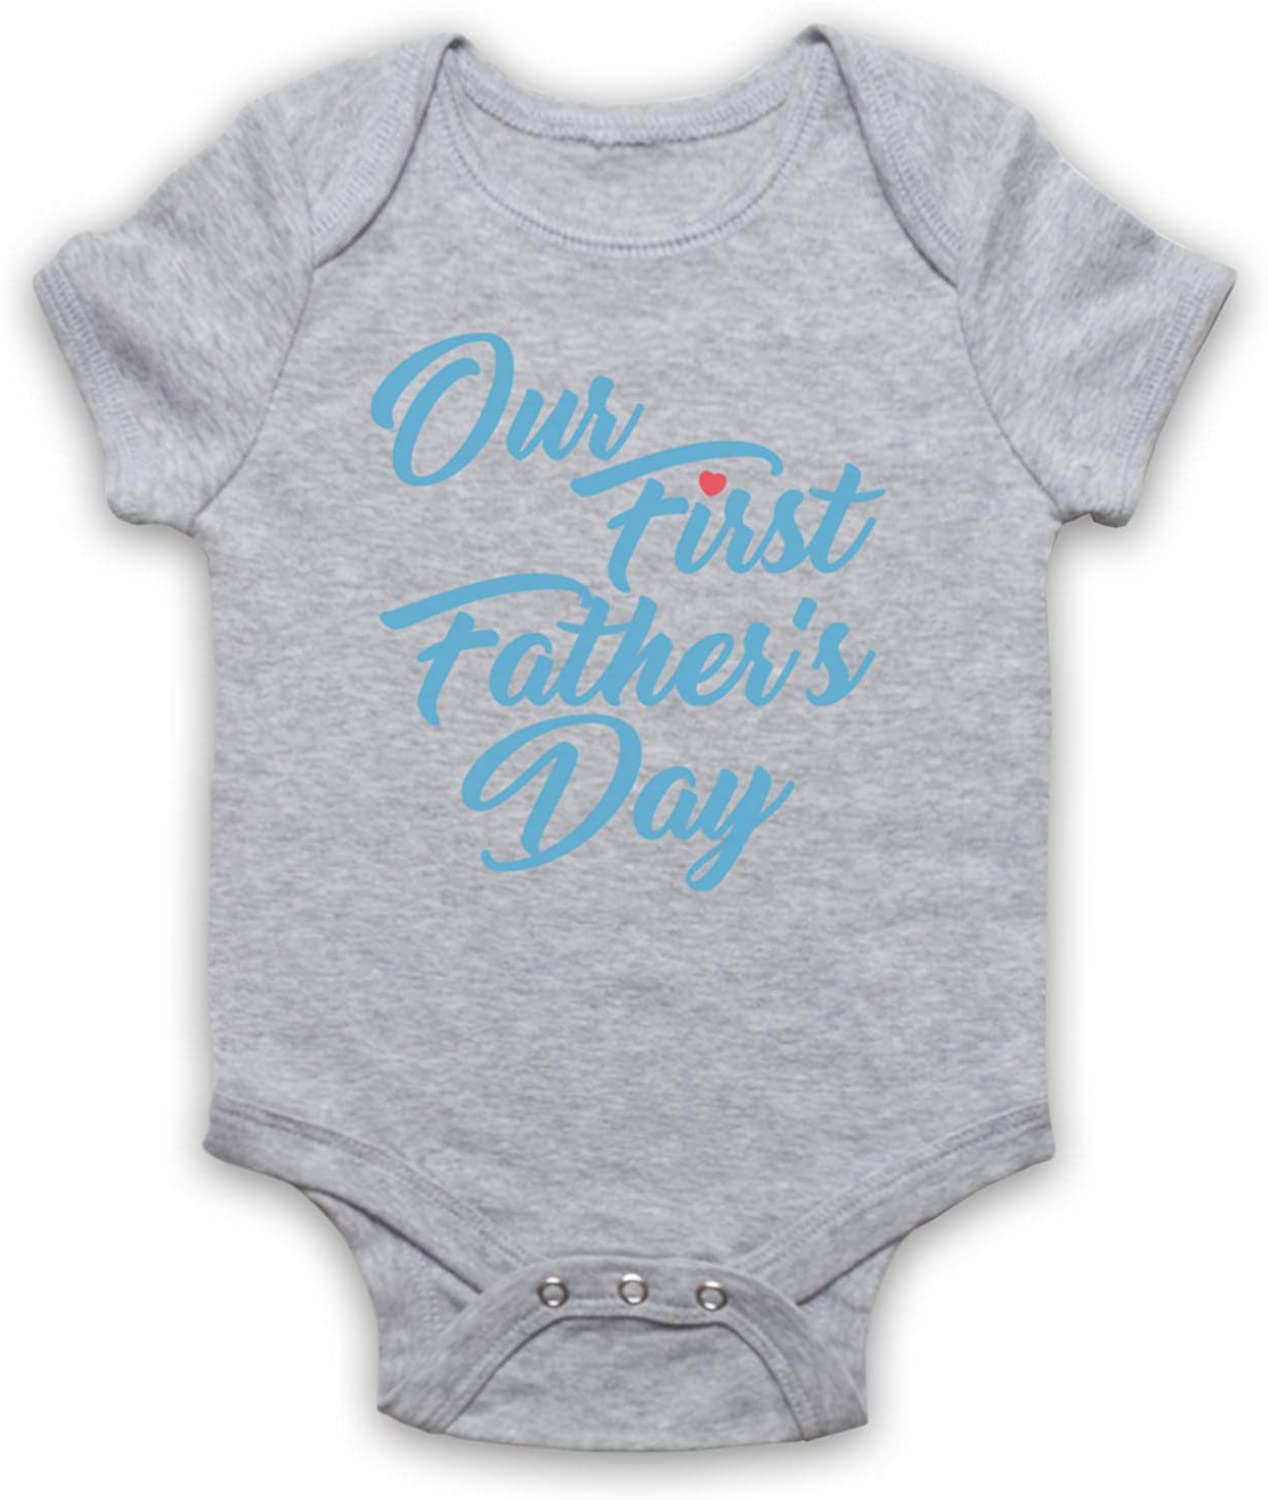 My Icon Unisex-Babys Our First Fathers Day Baby Son Baby Grow